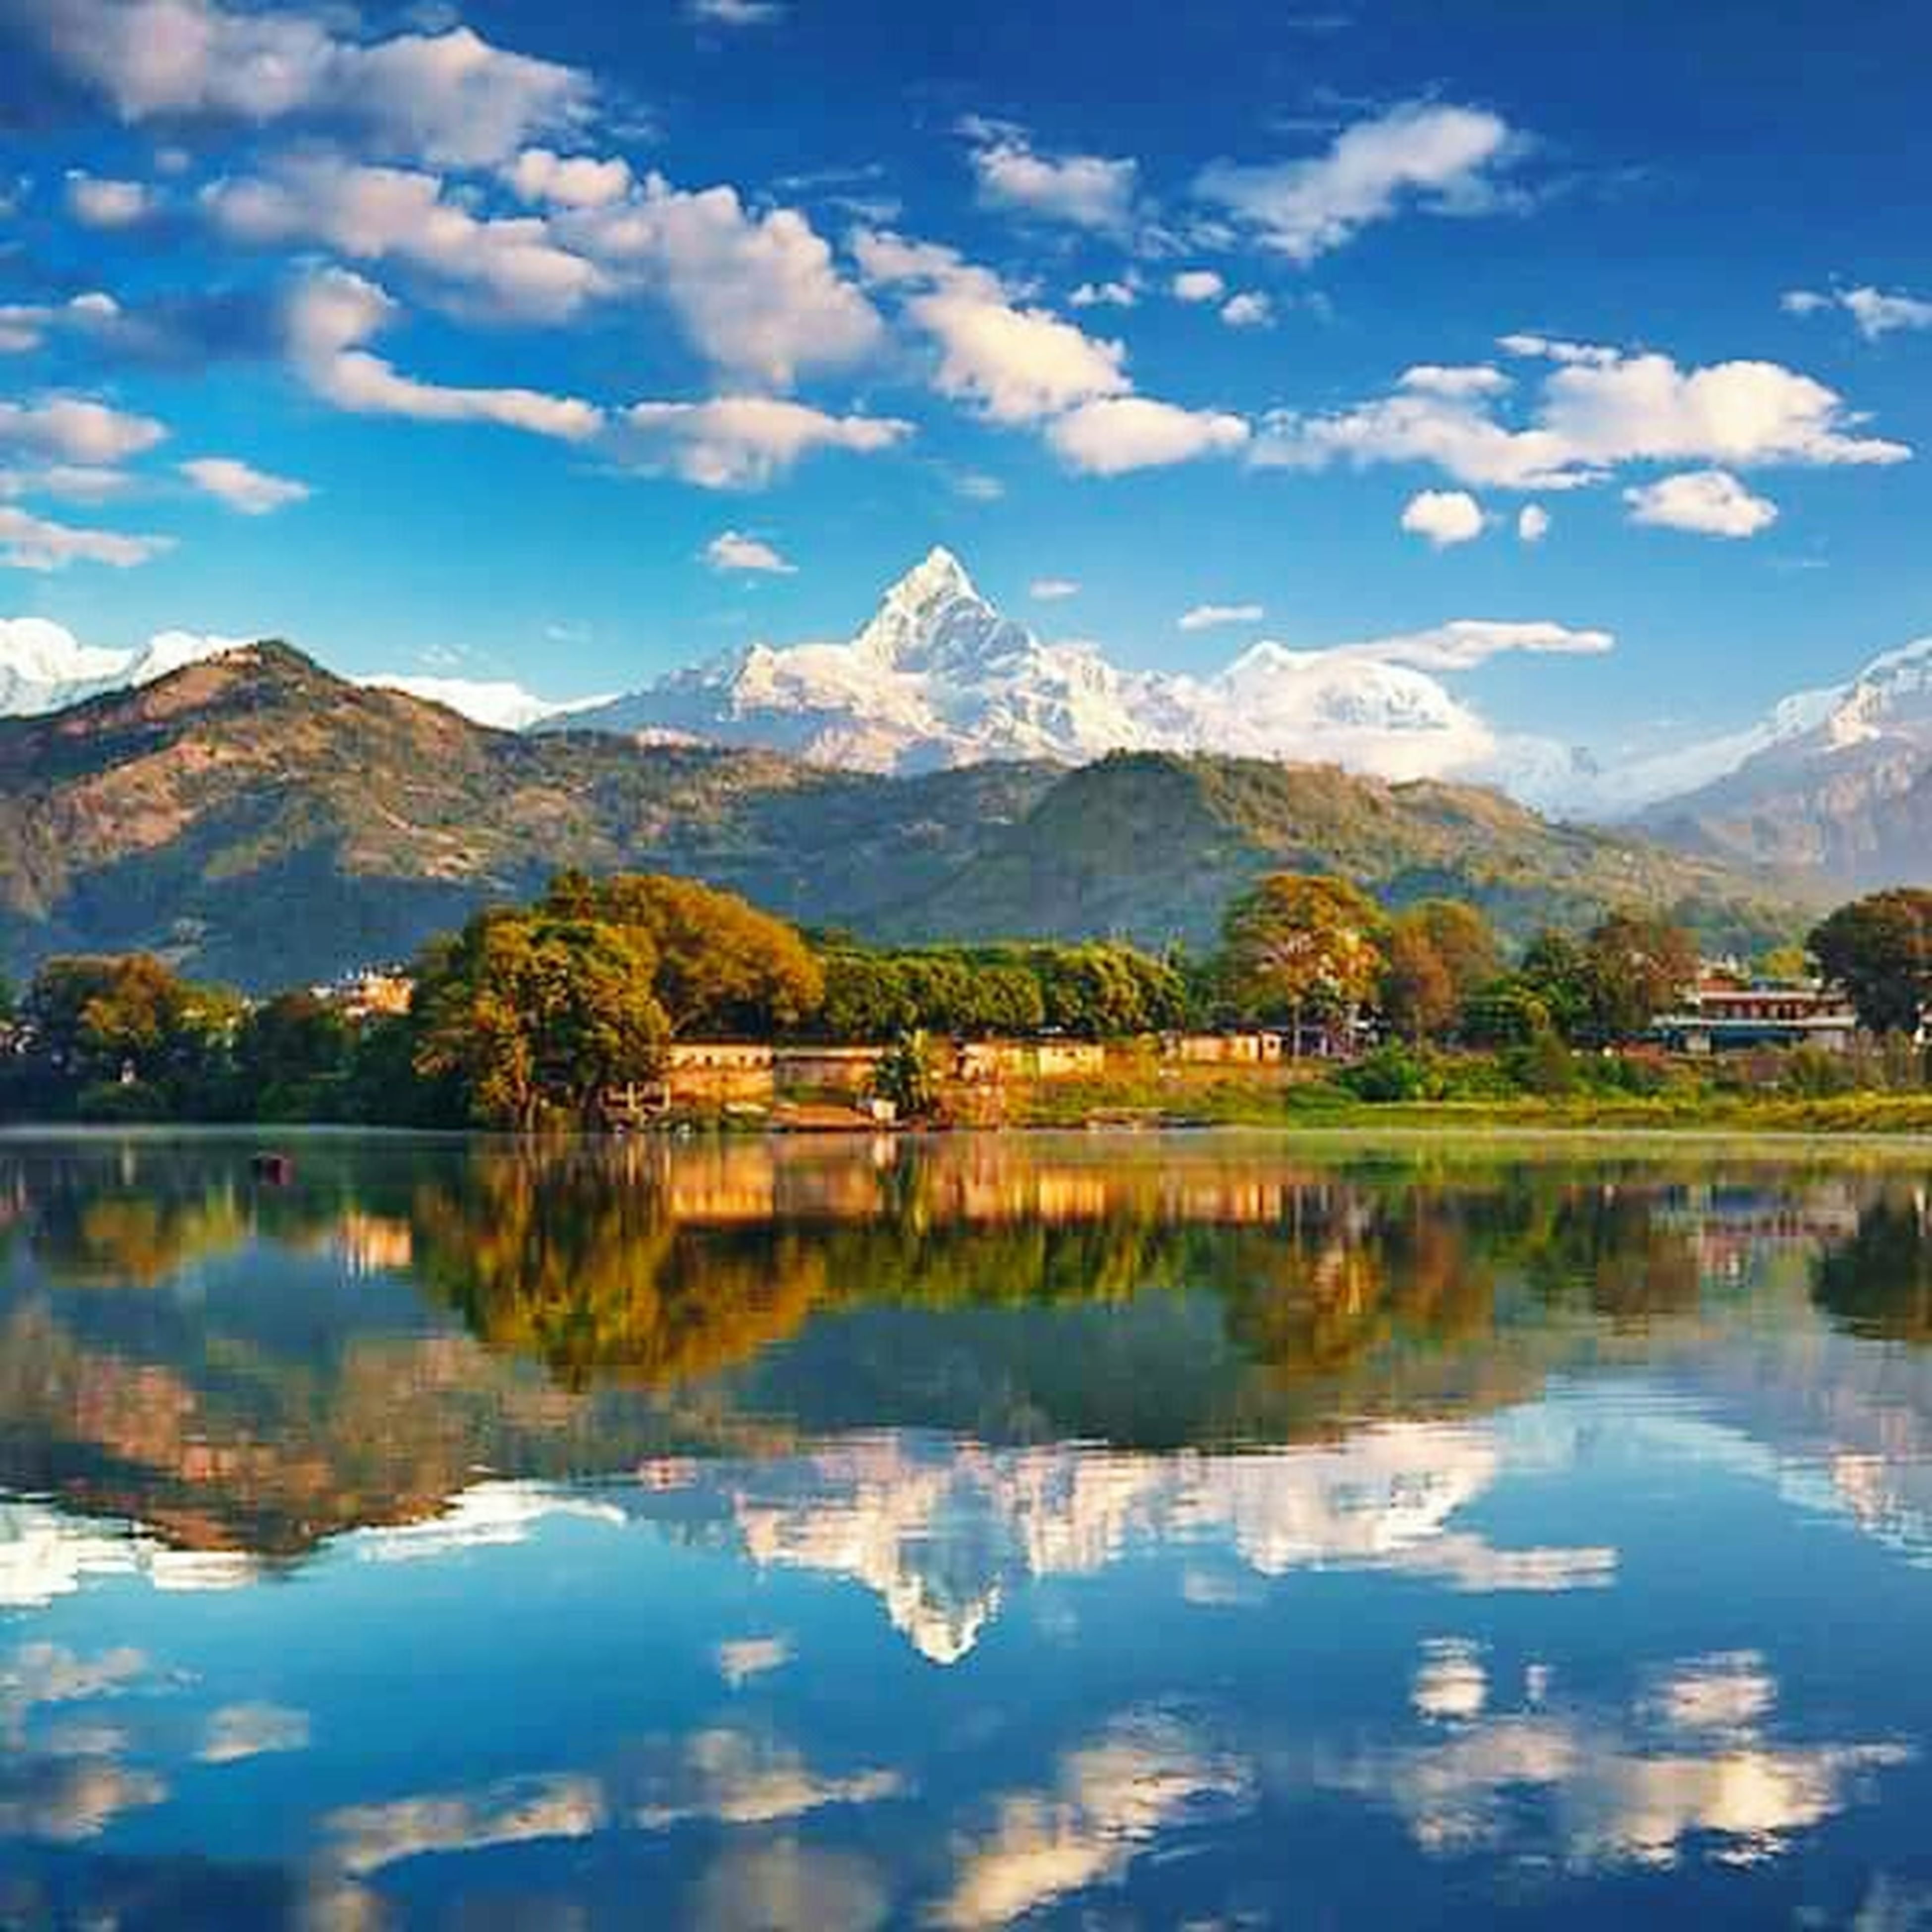 reflection, lake, mountain, tranquil scene, water, tranquility, scenics, beauty in nature, sky, tree, waterfront, mountain range, nature, standing water, cloud - sky, blue, idyllic, cloud, calm, majestic